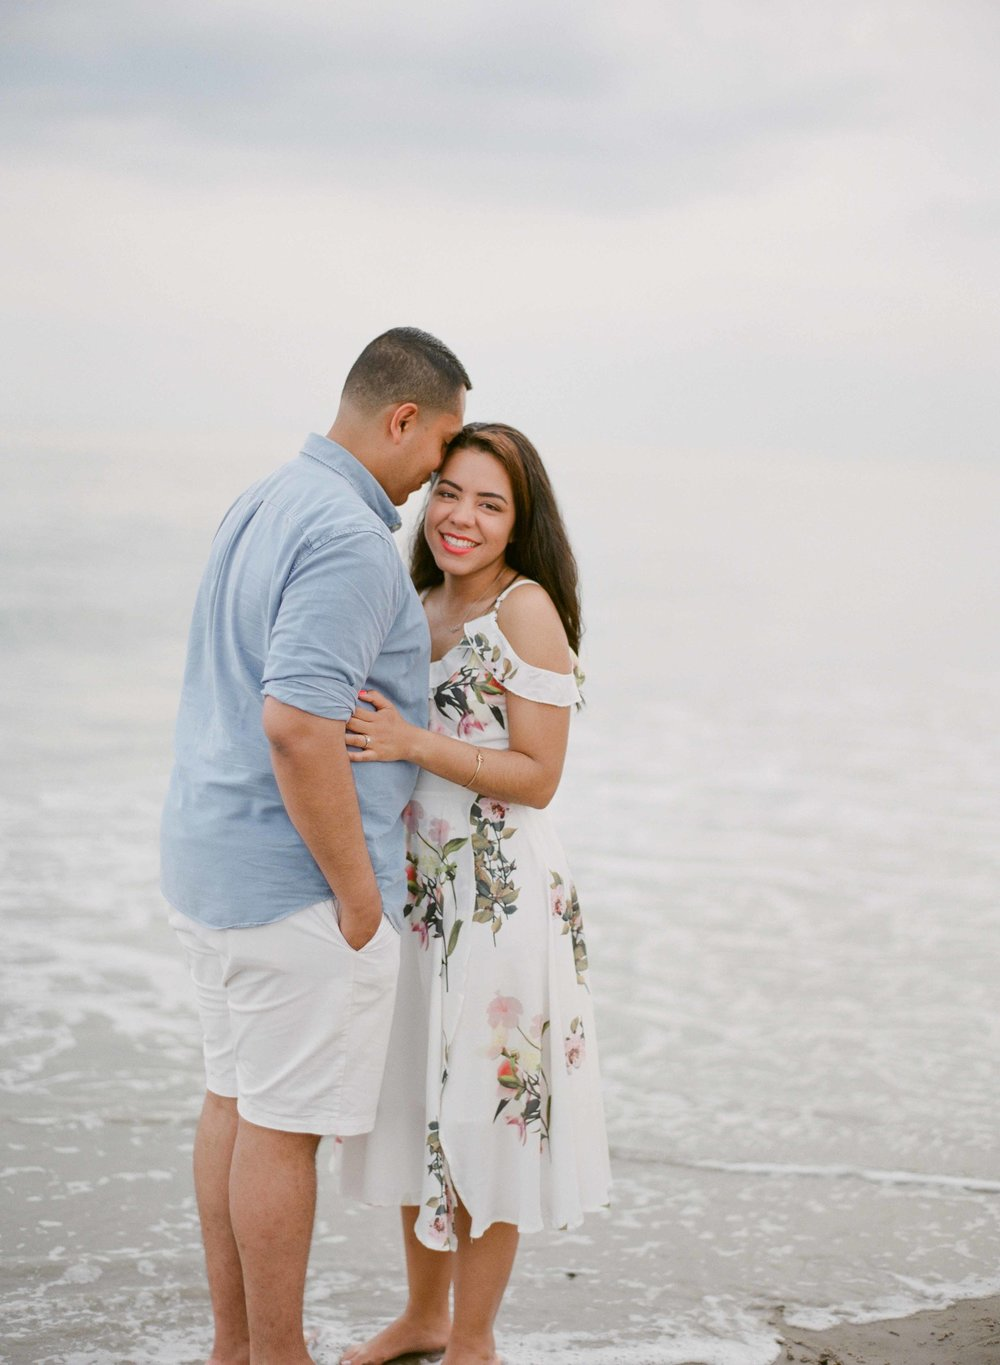 18_engagement-photographer-film.jpg